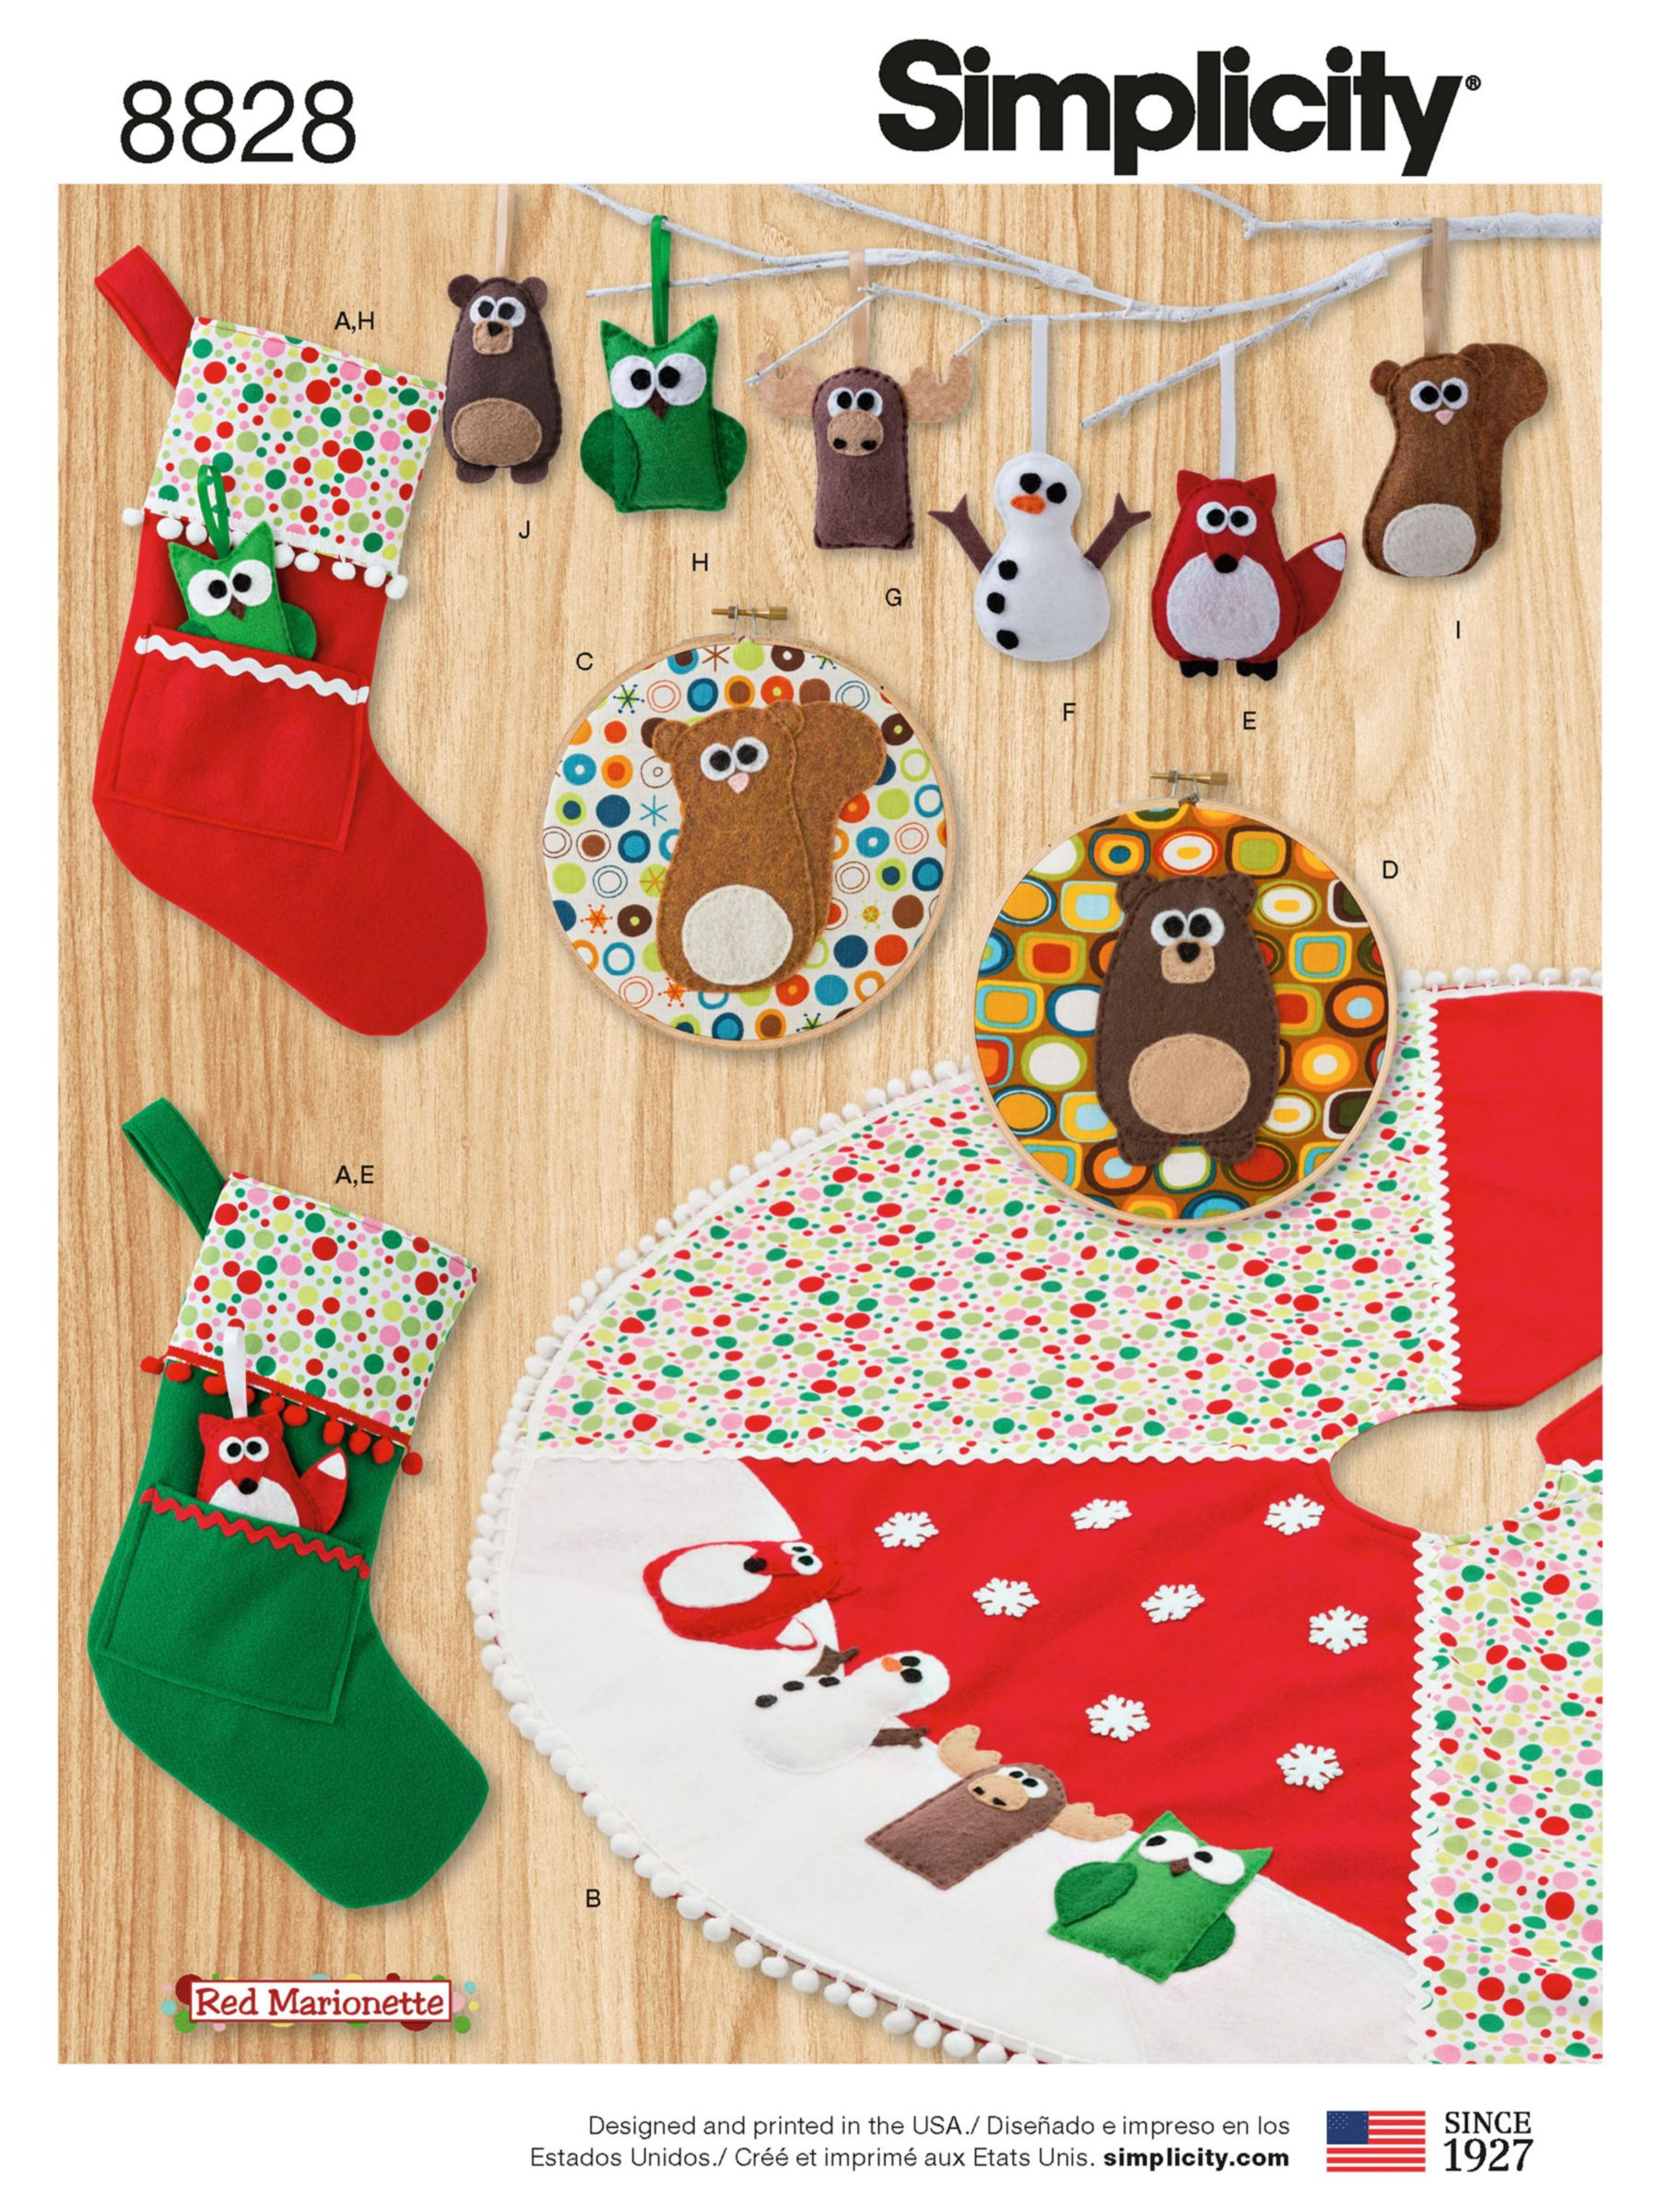 Simplicity Simplicity Christmas Decorations and Stockings Sewing Pattern, 8828